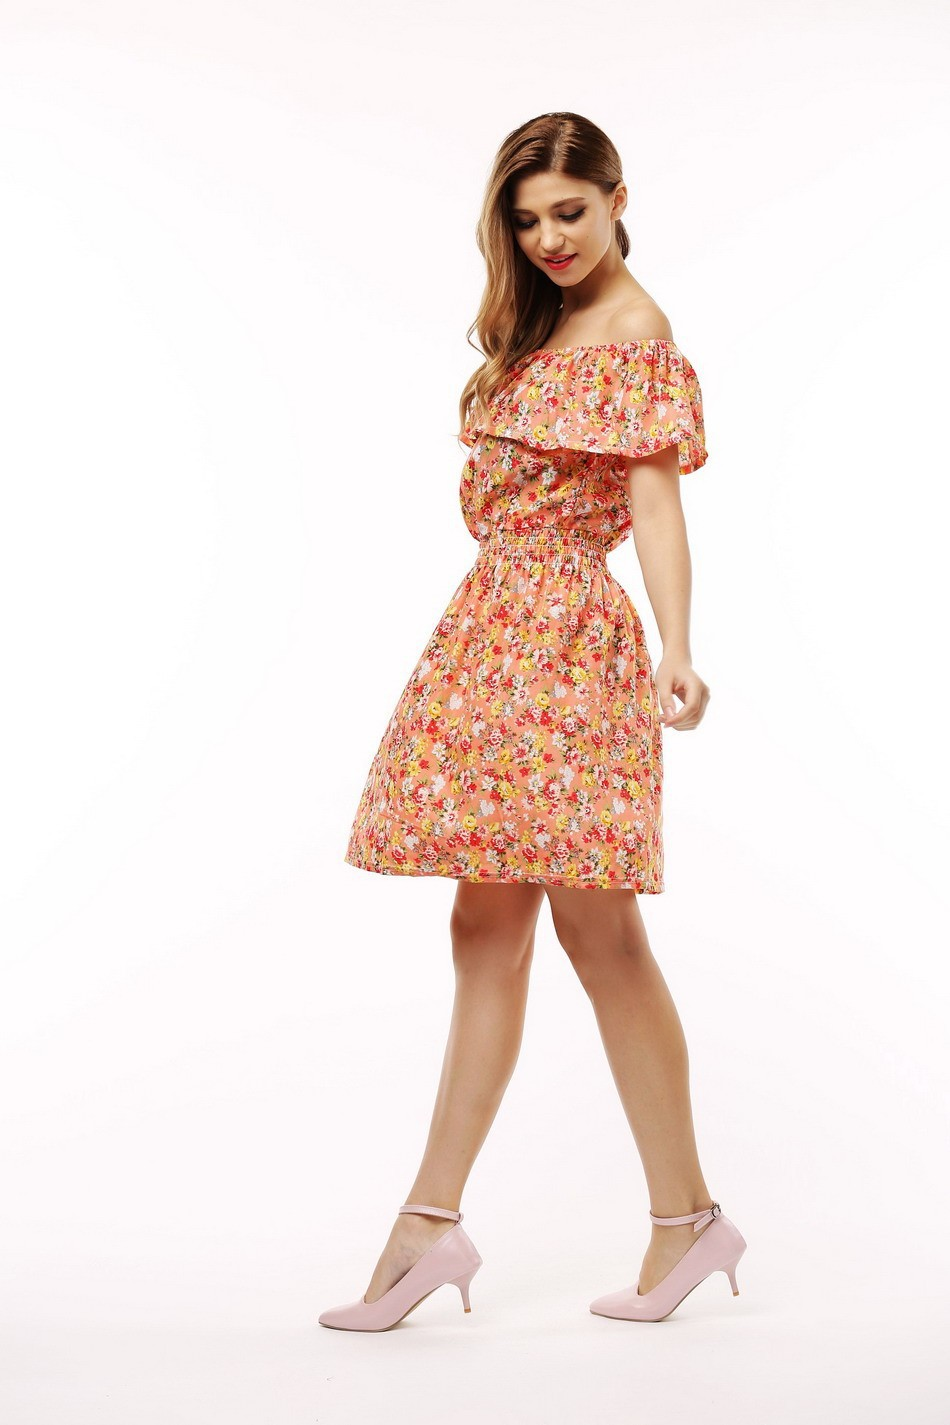 Fashion Floral Print Summer Dresses - Fashion Trendy Shop